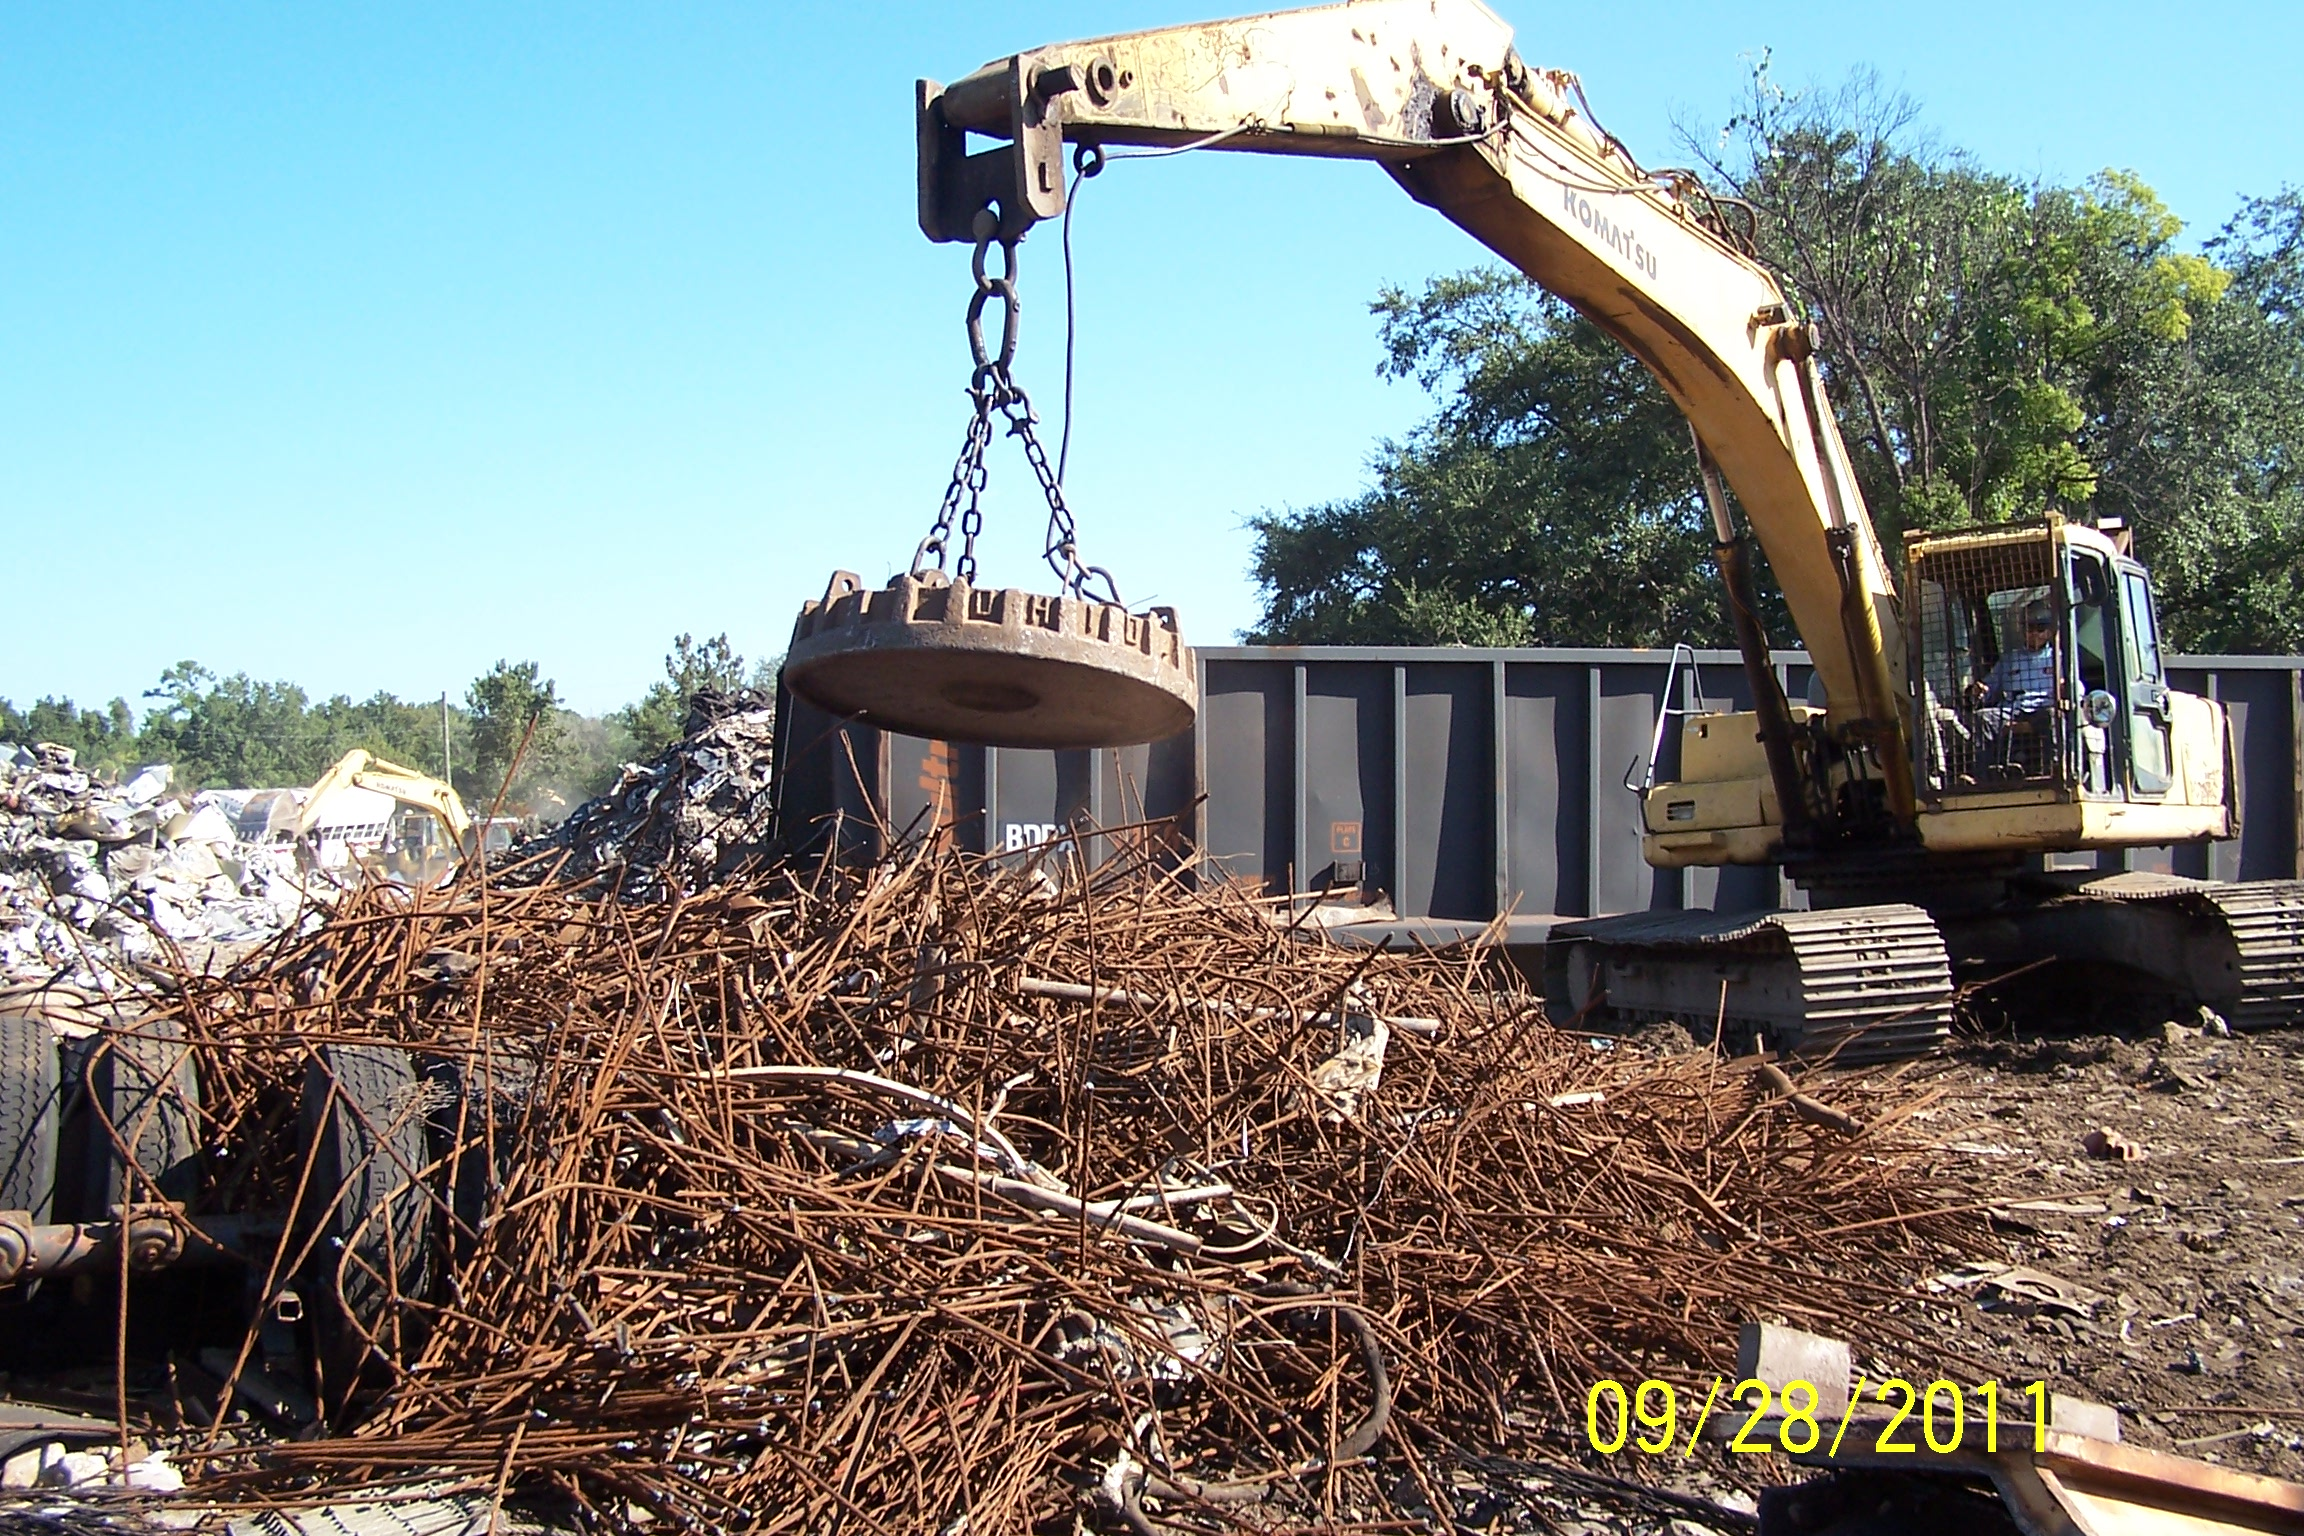 Nail In Tire Repair >> Dominion Metal Recycling Center 2400 Old New York Ave, Deland, FL 32720 - YP.com